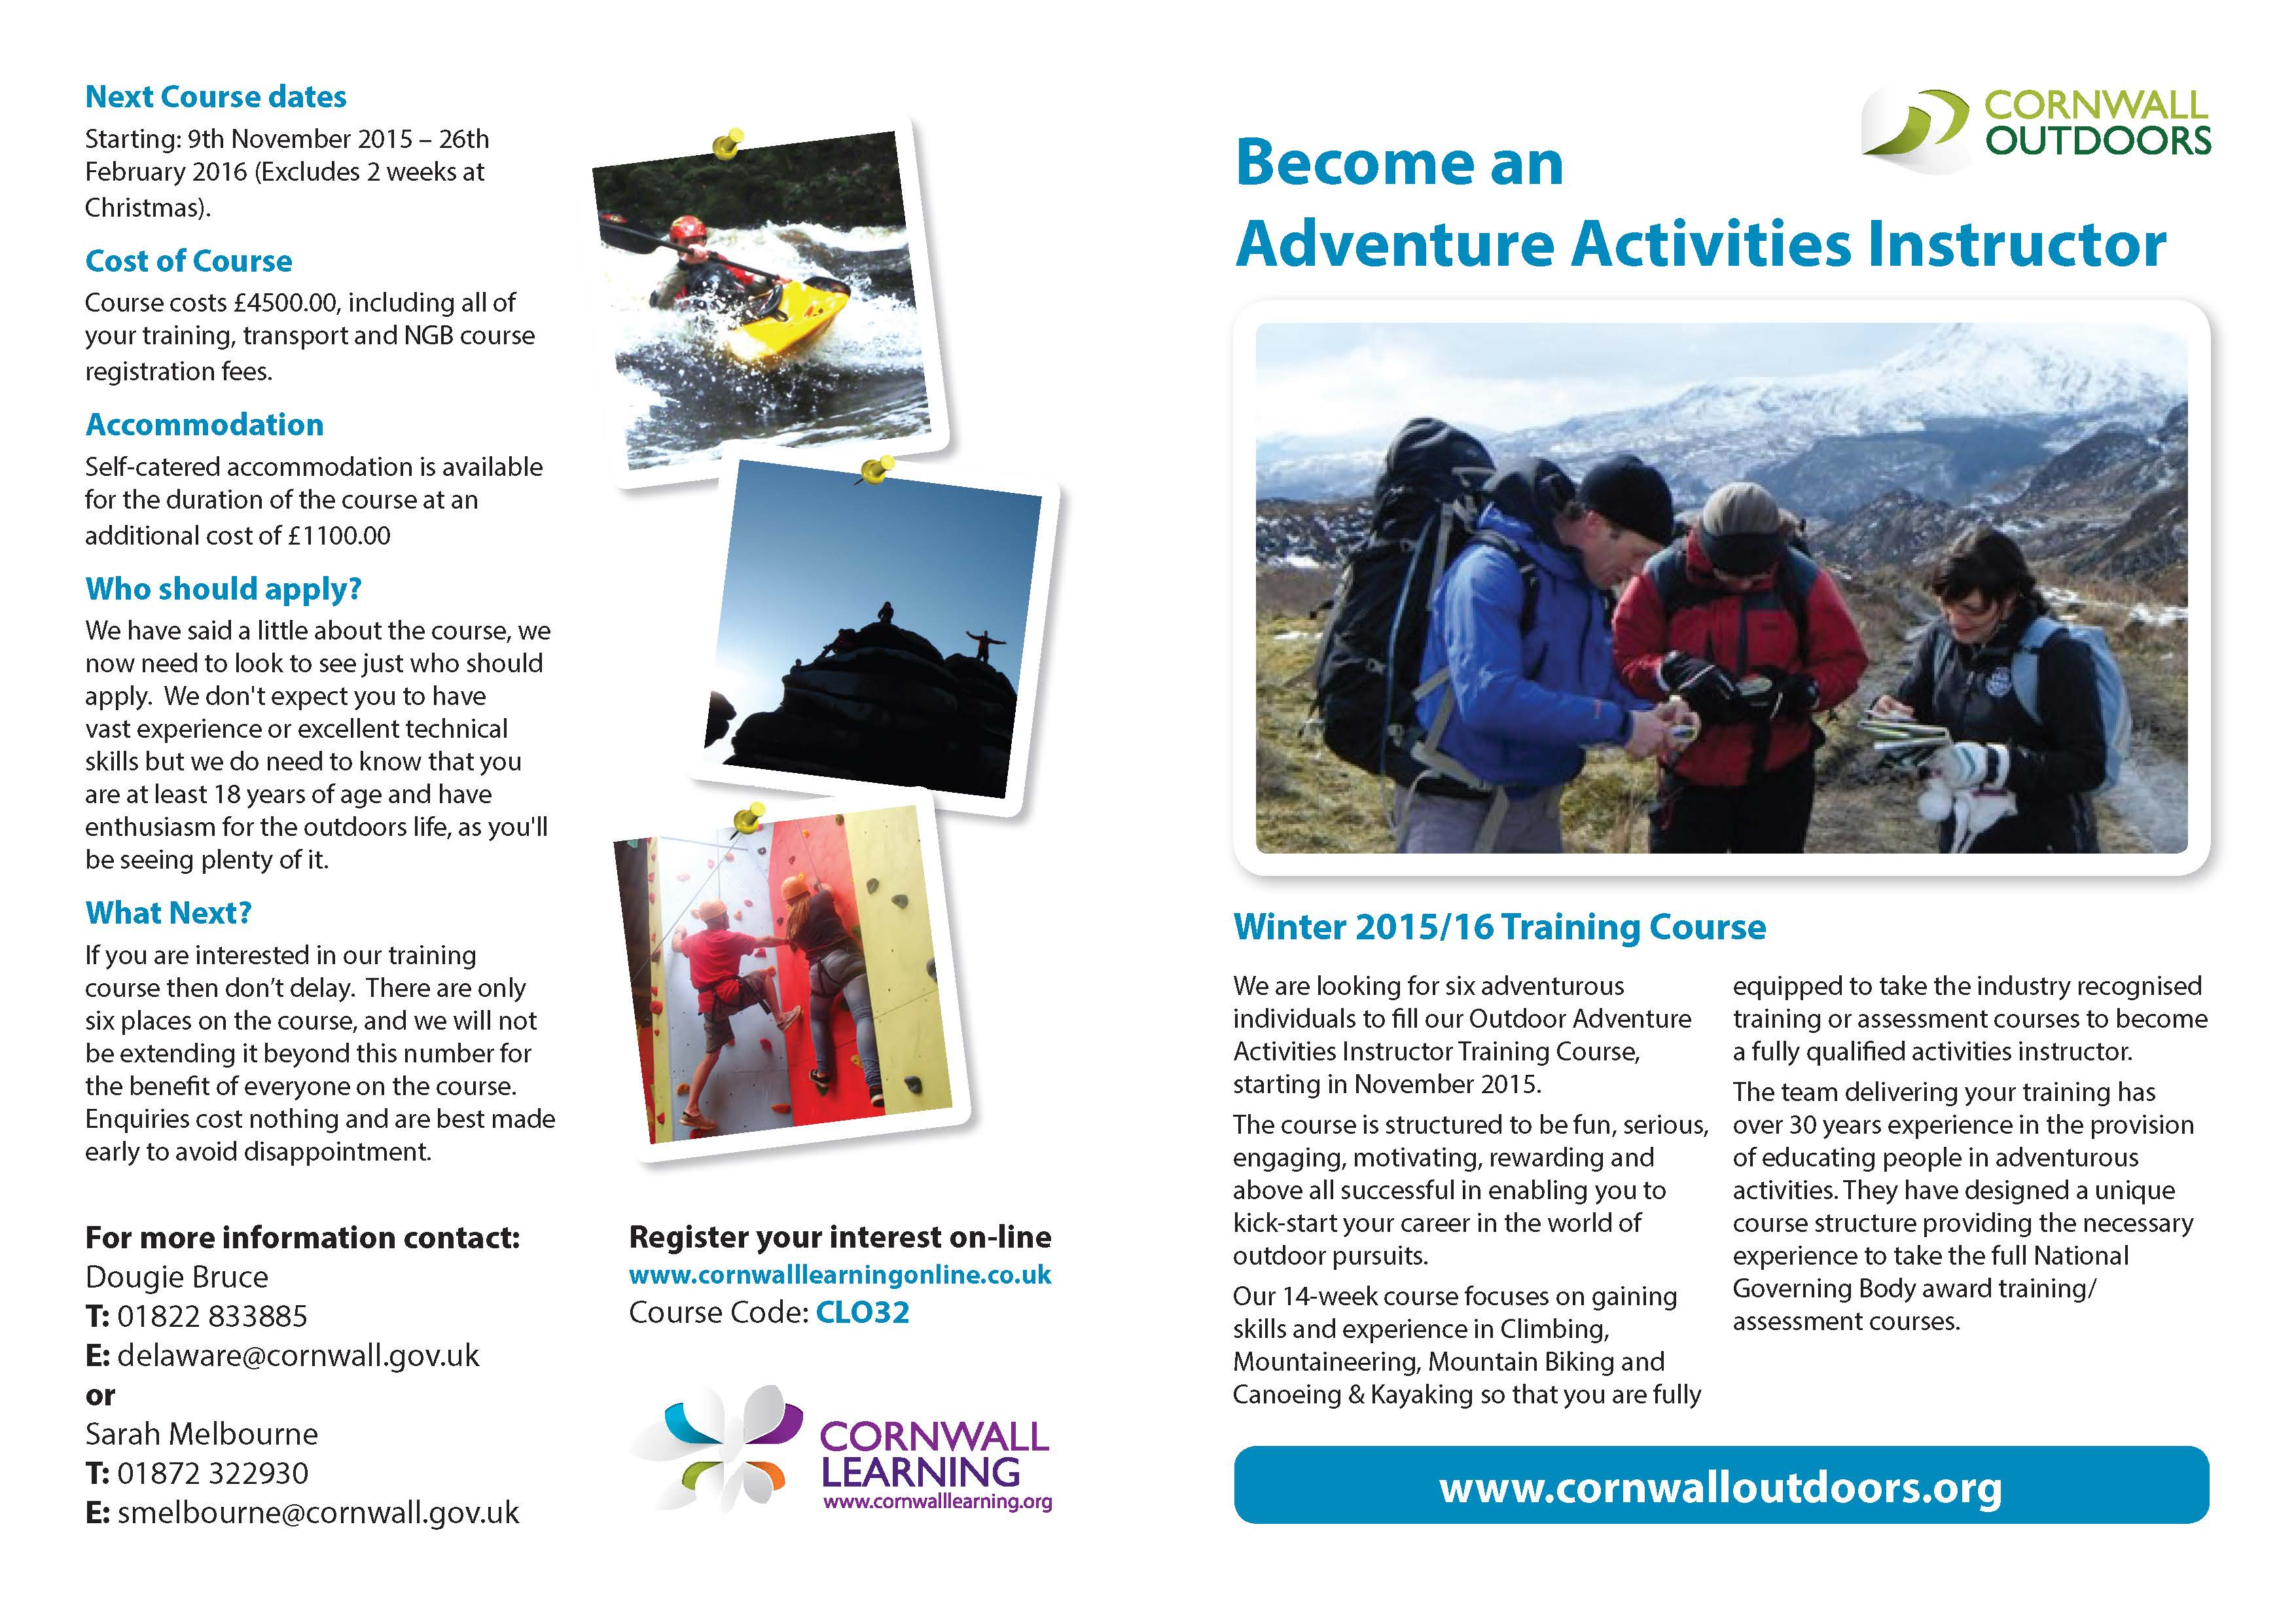 CLO32 - winter training course - adventure activities instructor_Page_1